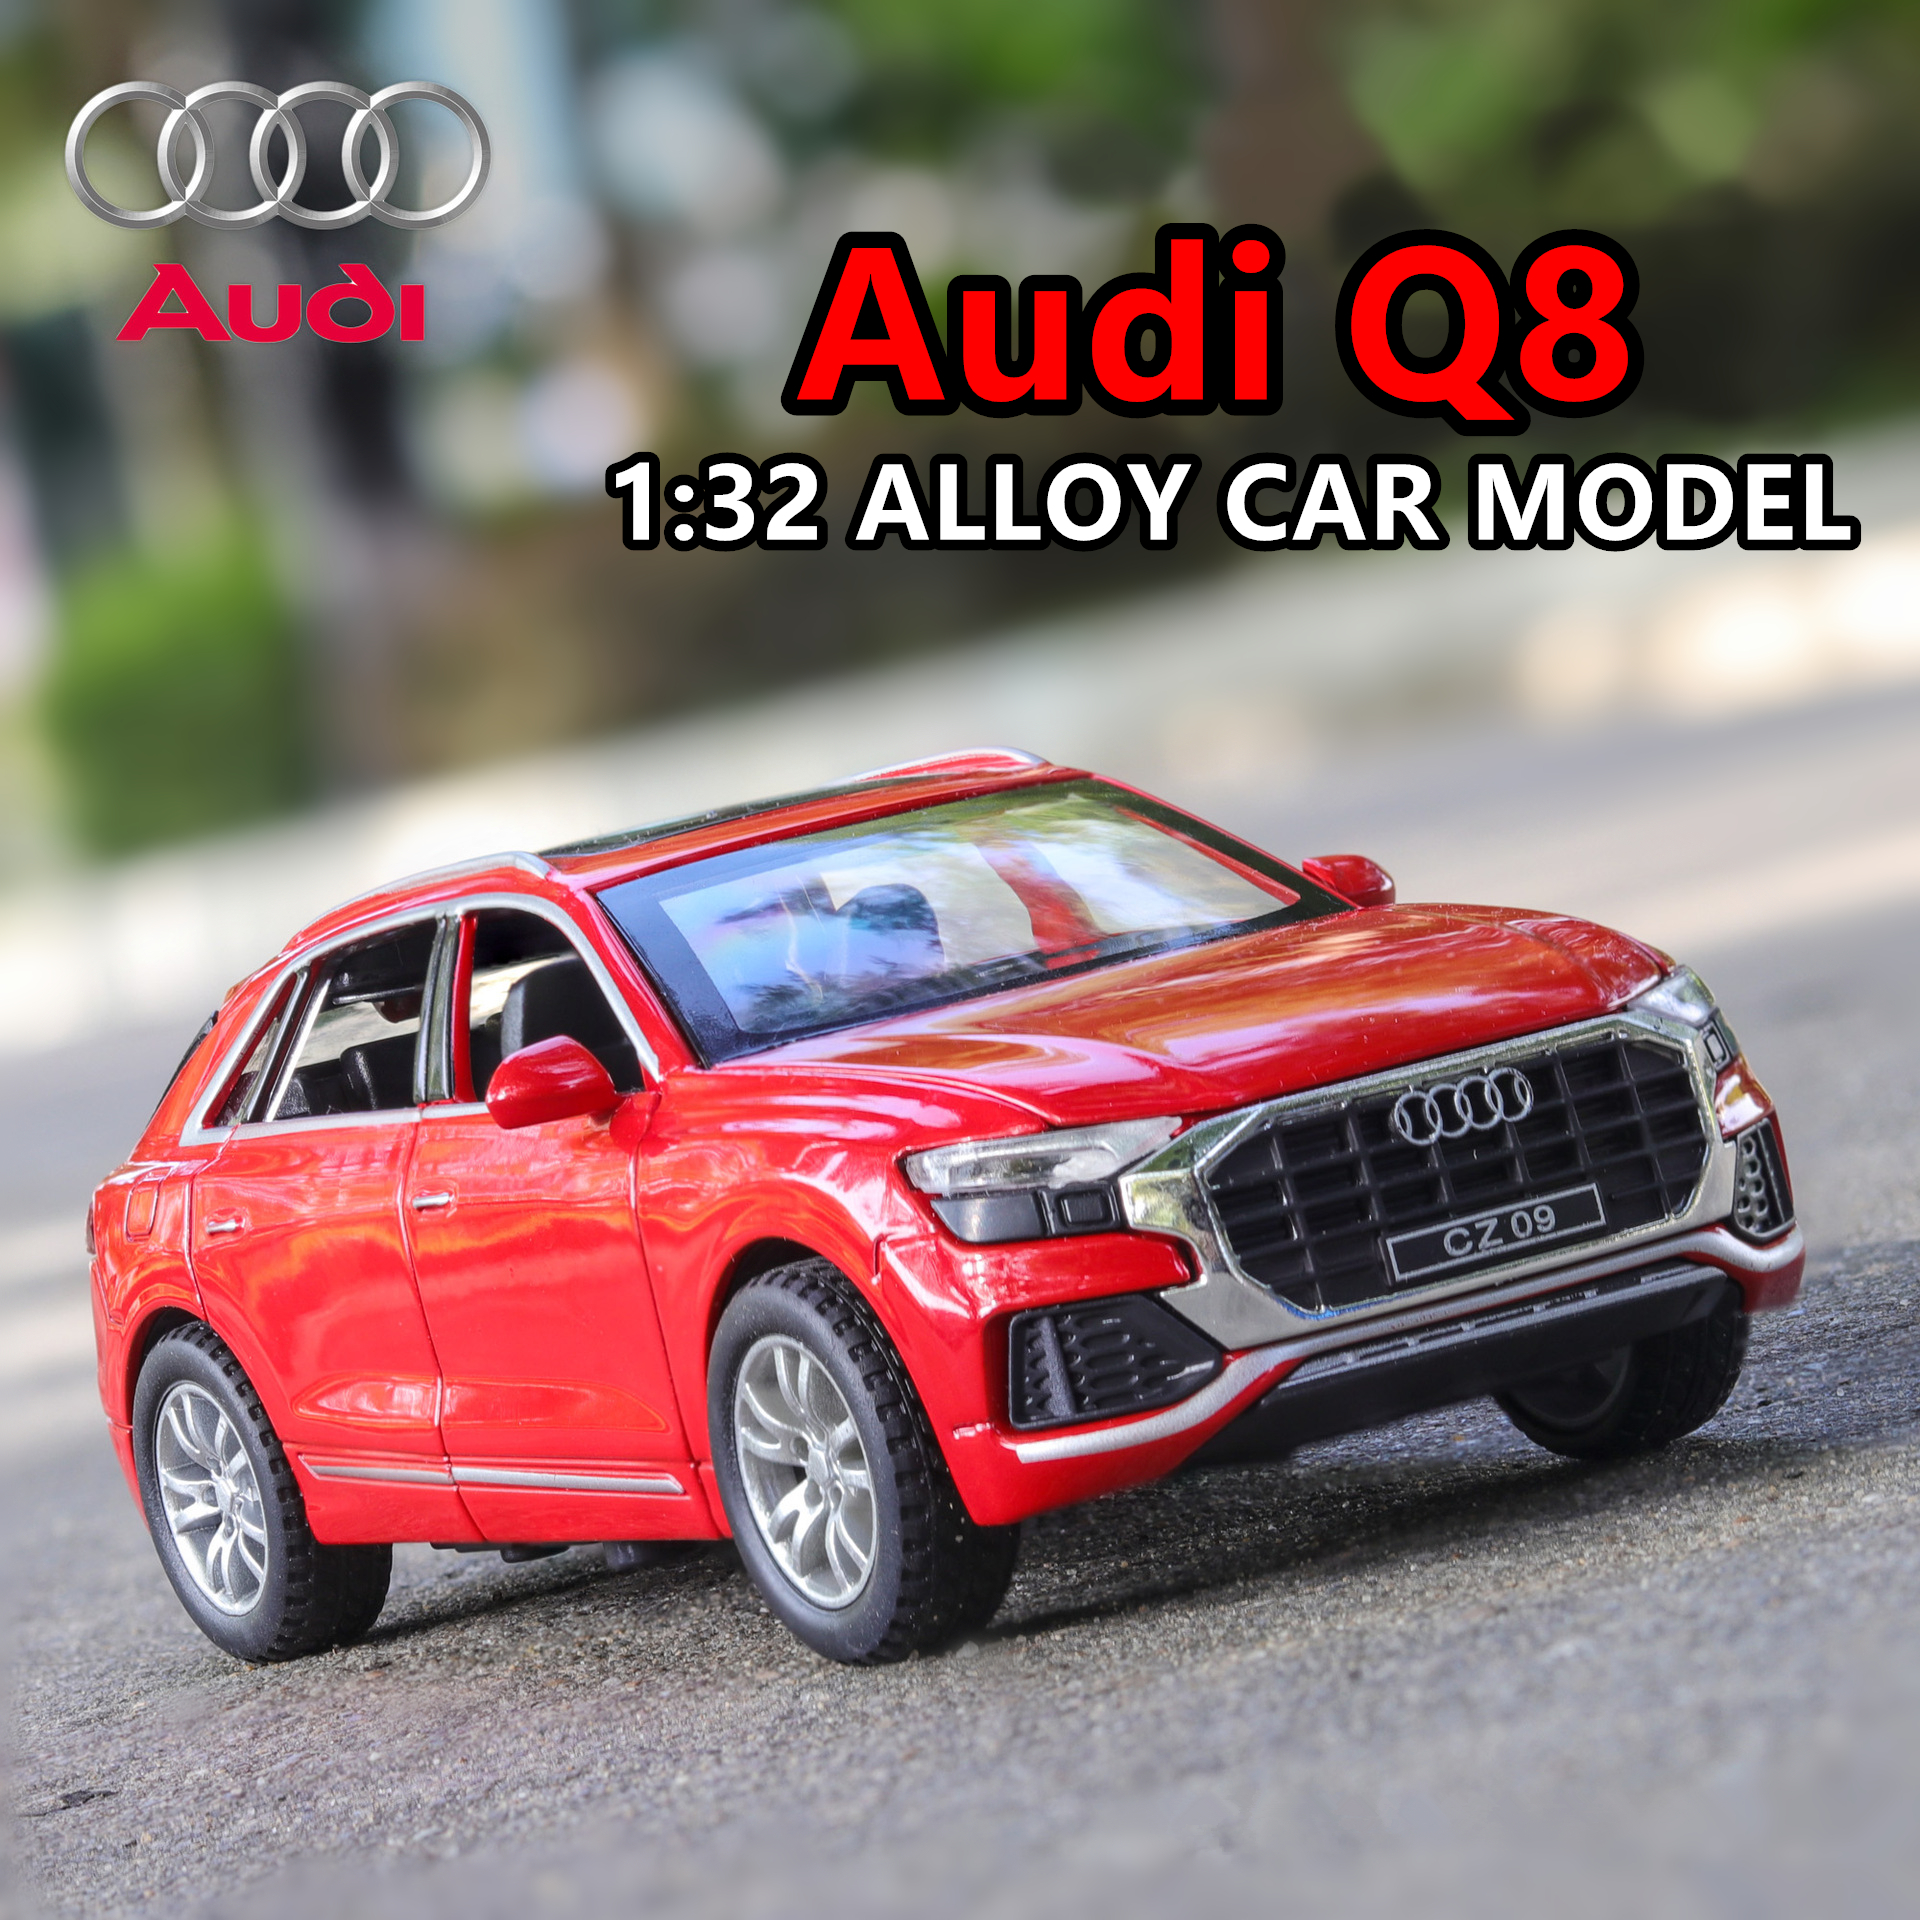 1:32 Audi Q8 simulation with sound and light alloy toy car model collection gift pull-back vehicle